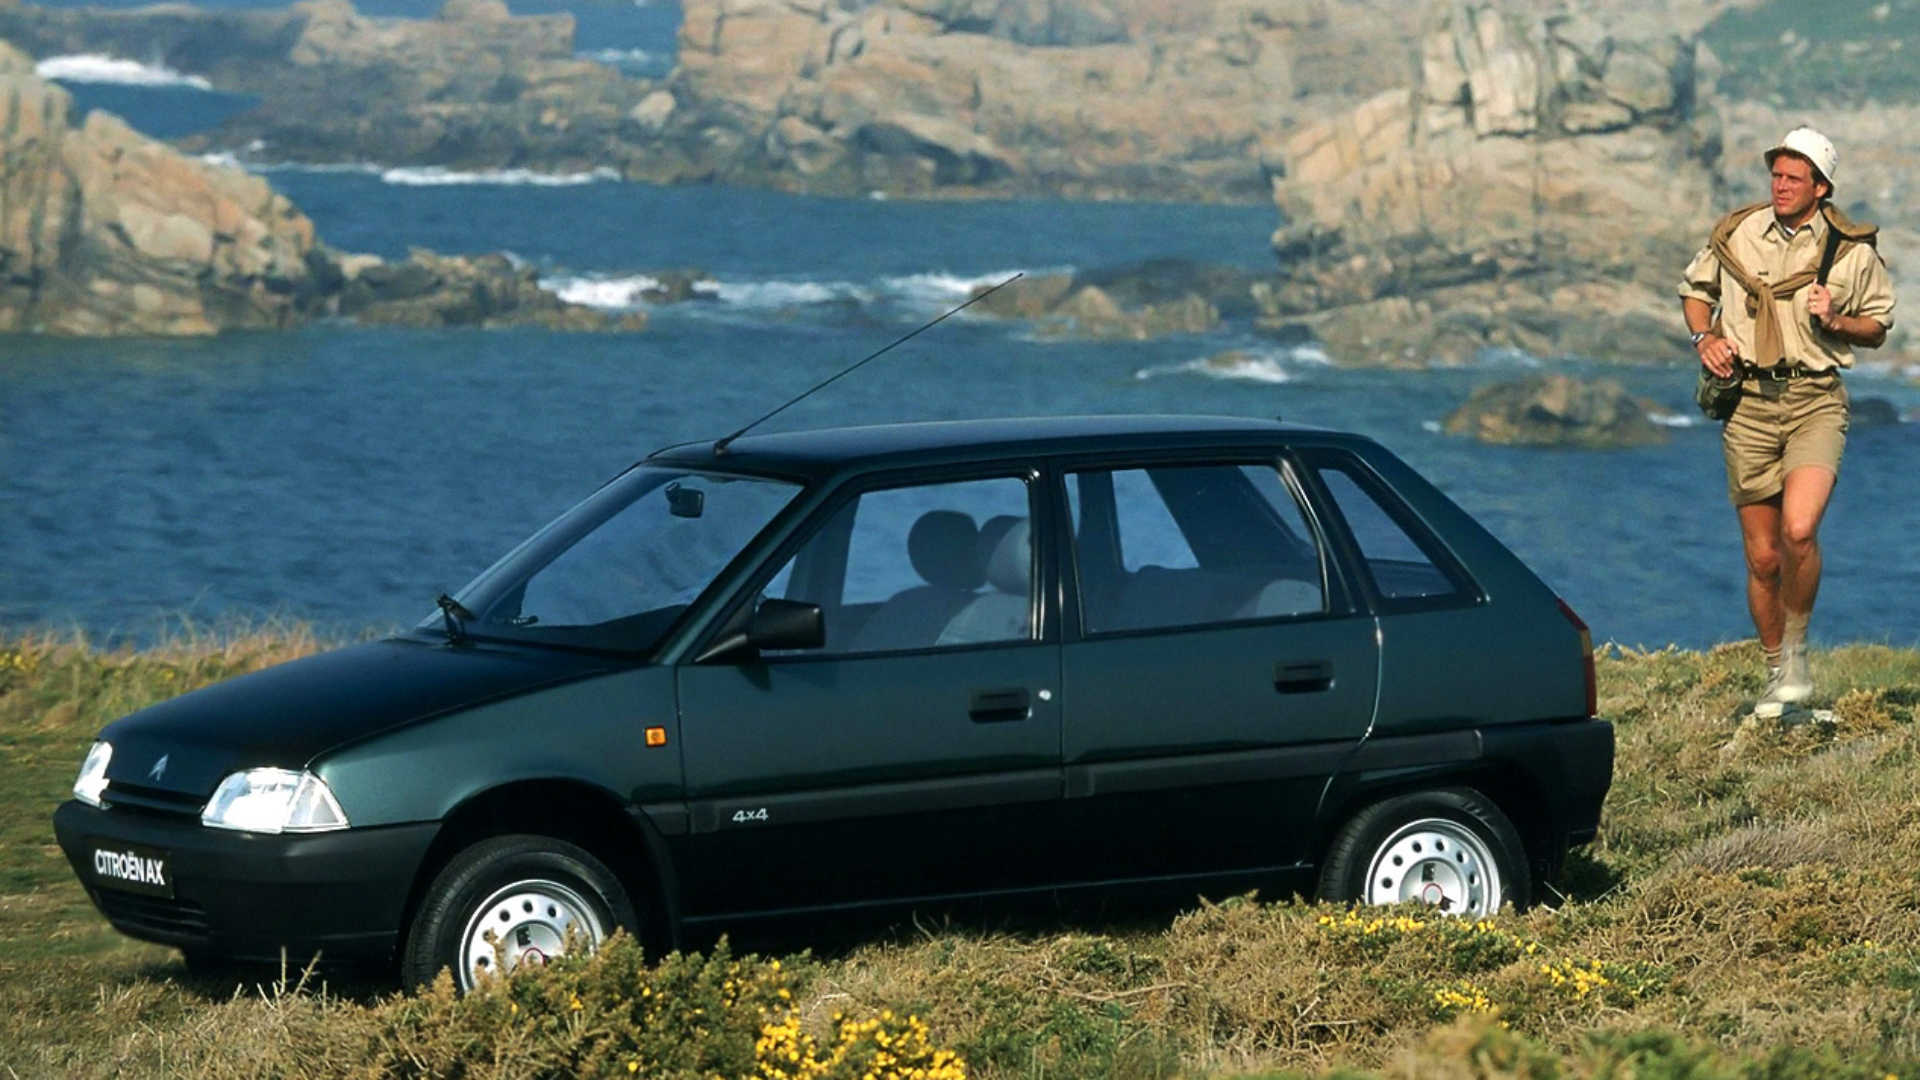 Citroen AX 4x4 on the coast